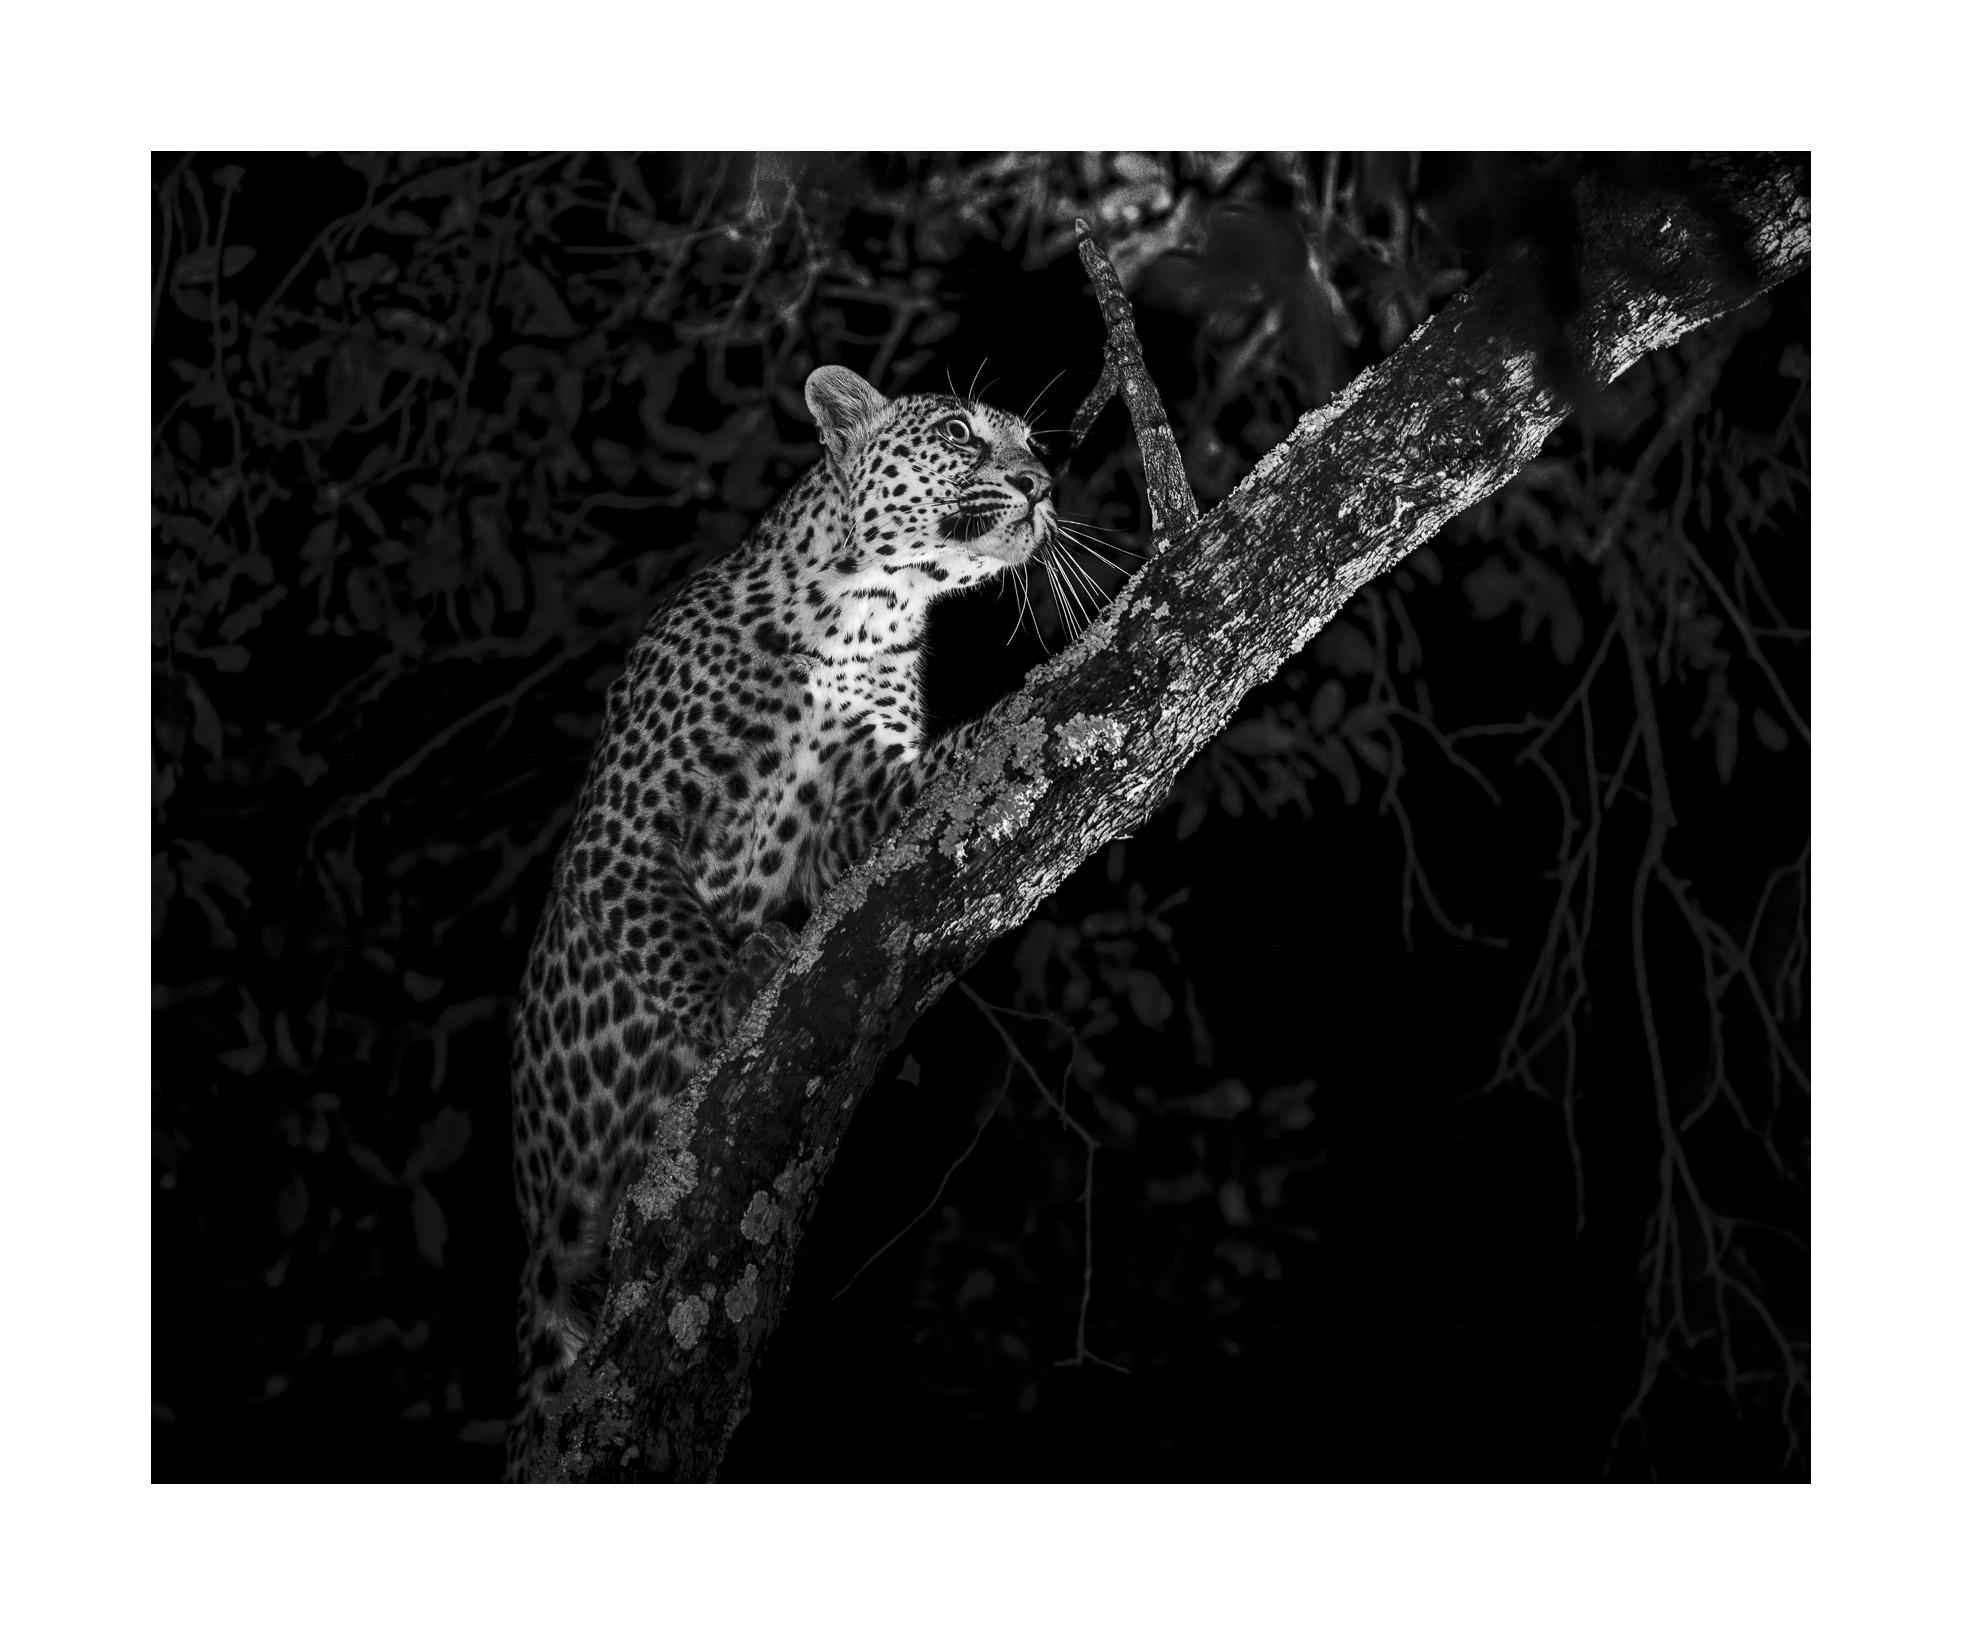 Leopard  (Panthera pardus)  - South Luangwa National Park, Zambia  A truly spectacular encounter with a young leopard ascending and stalking guinea fowl resting at the top of the tree. She was composed, silent and purposeful, much in contrast to myself watching from below where I was full of anticipation and excitement. I observed from initial moments on the ground till she reached the highest branches where I lost sight of her. There was a long pause and I heard her pounce. The guinea fowl panicked and scattered! But alas when she came down, she was empty handed, she would have to go hungry for a little longer.